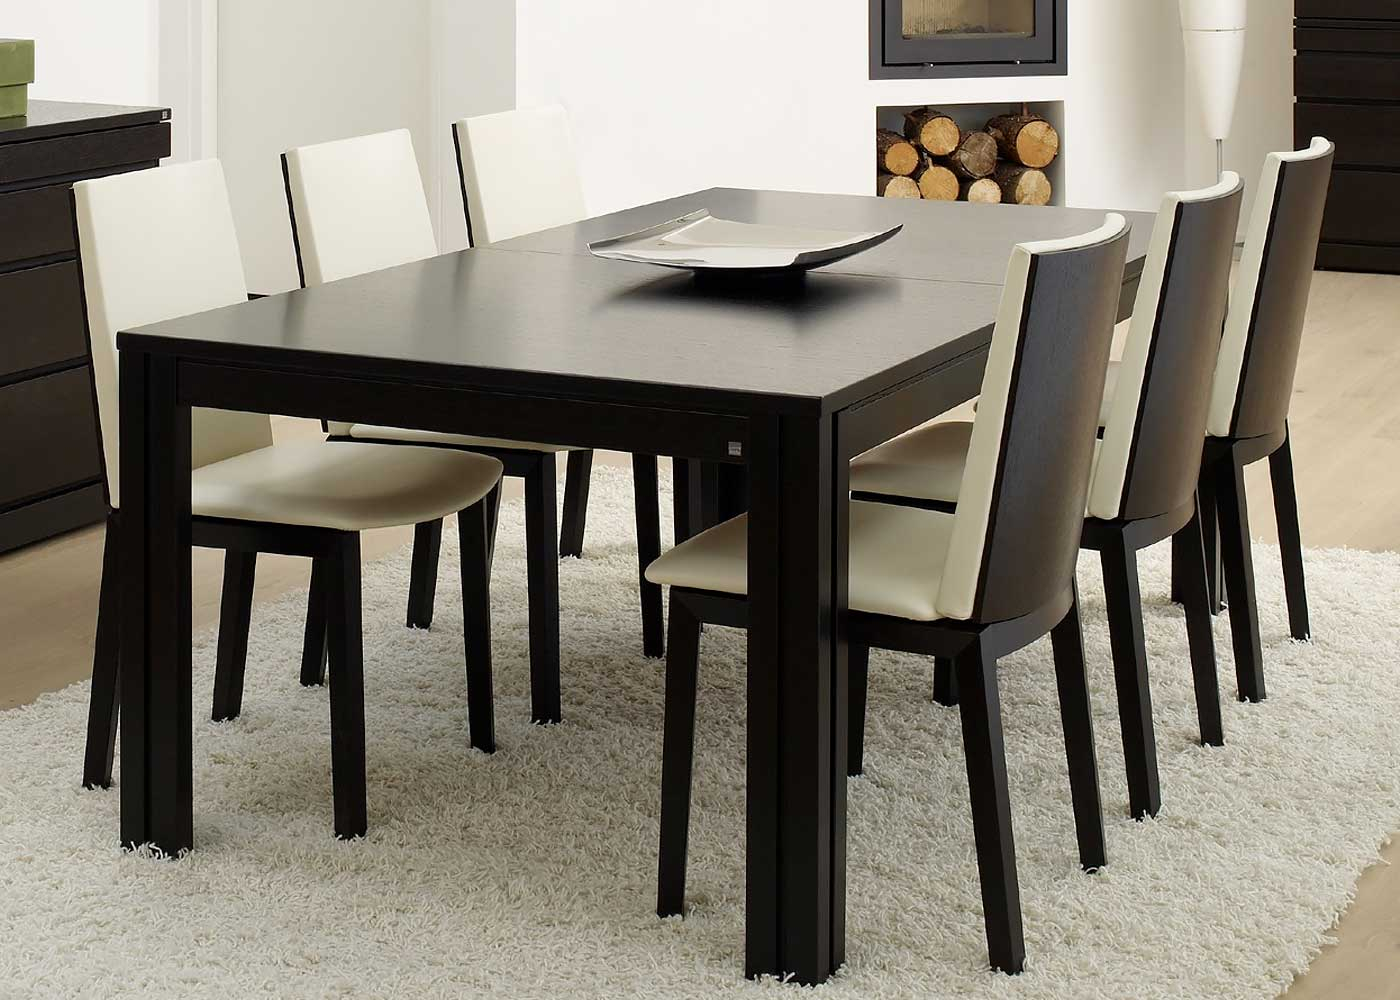 Skovby Sm24 Dining Table – Midfurn Furniture Superstore Within Recent Adsila 24'' Dining Tables (Photo 11 of 15)